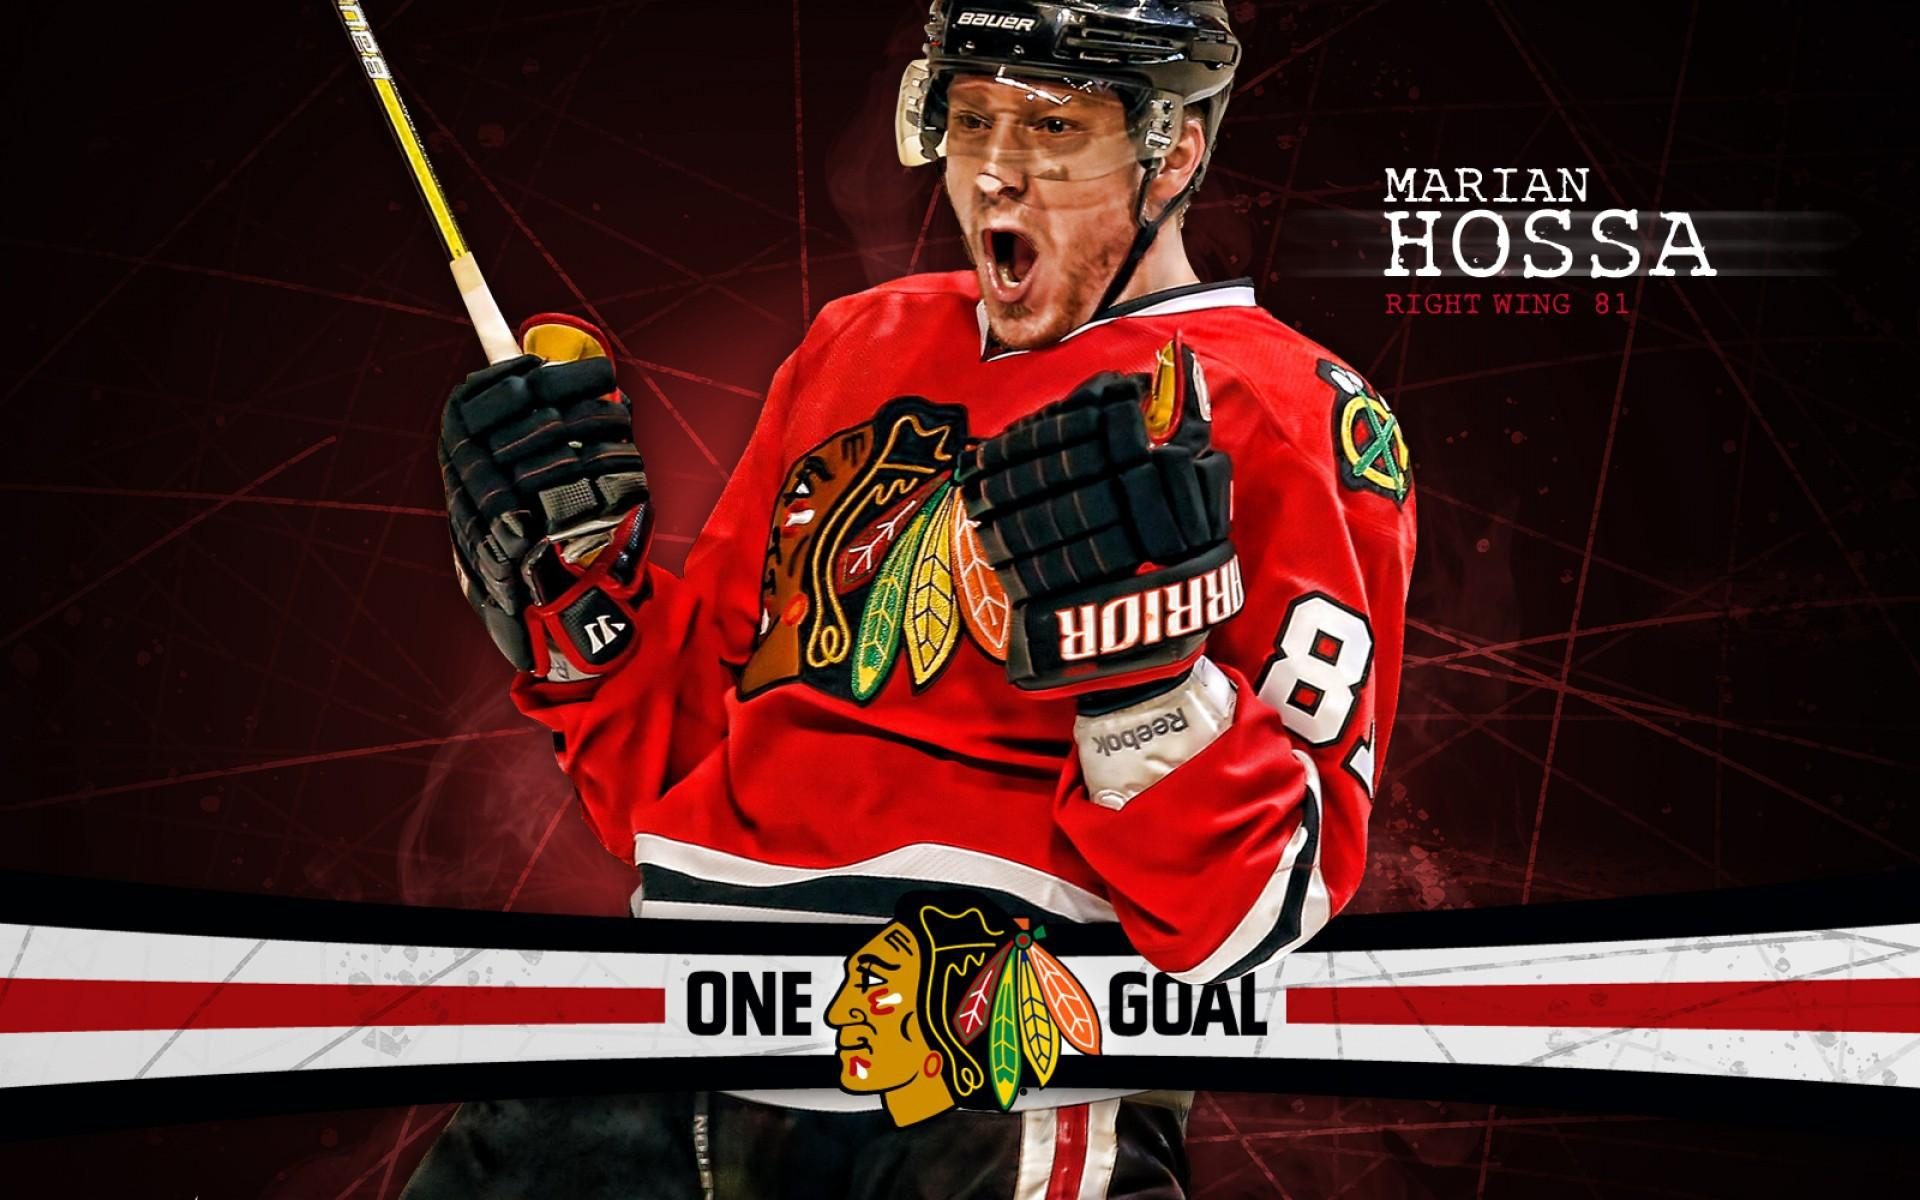 Player Marian Hossa wallpapers and image